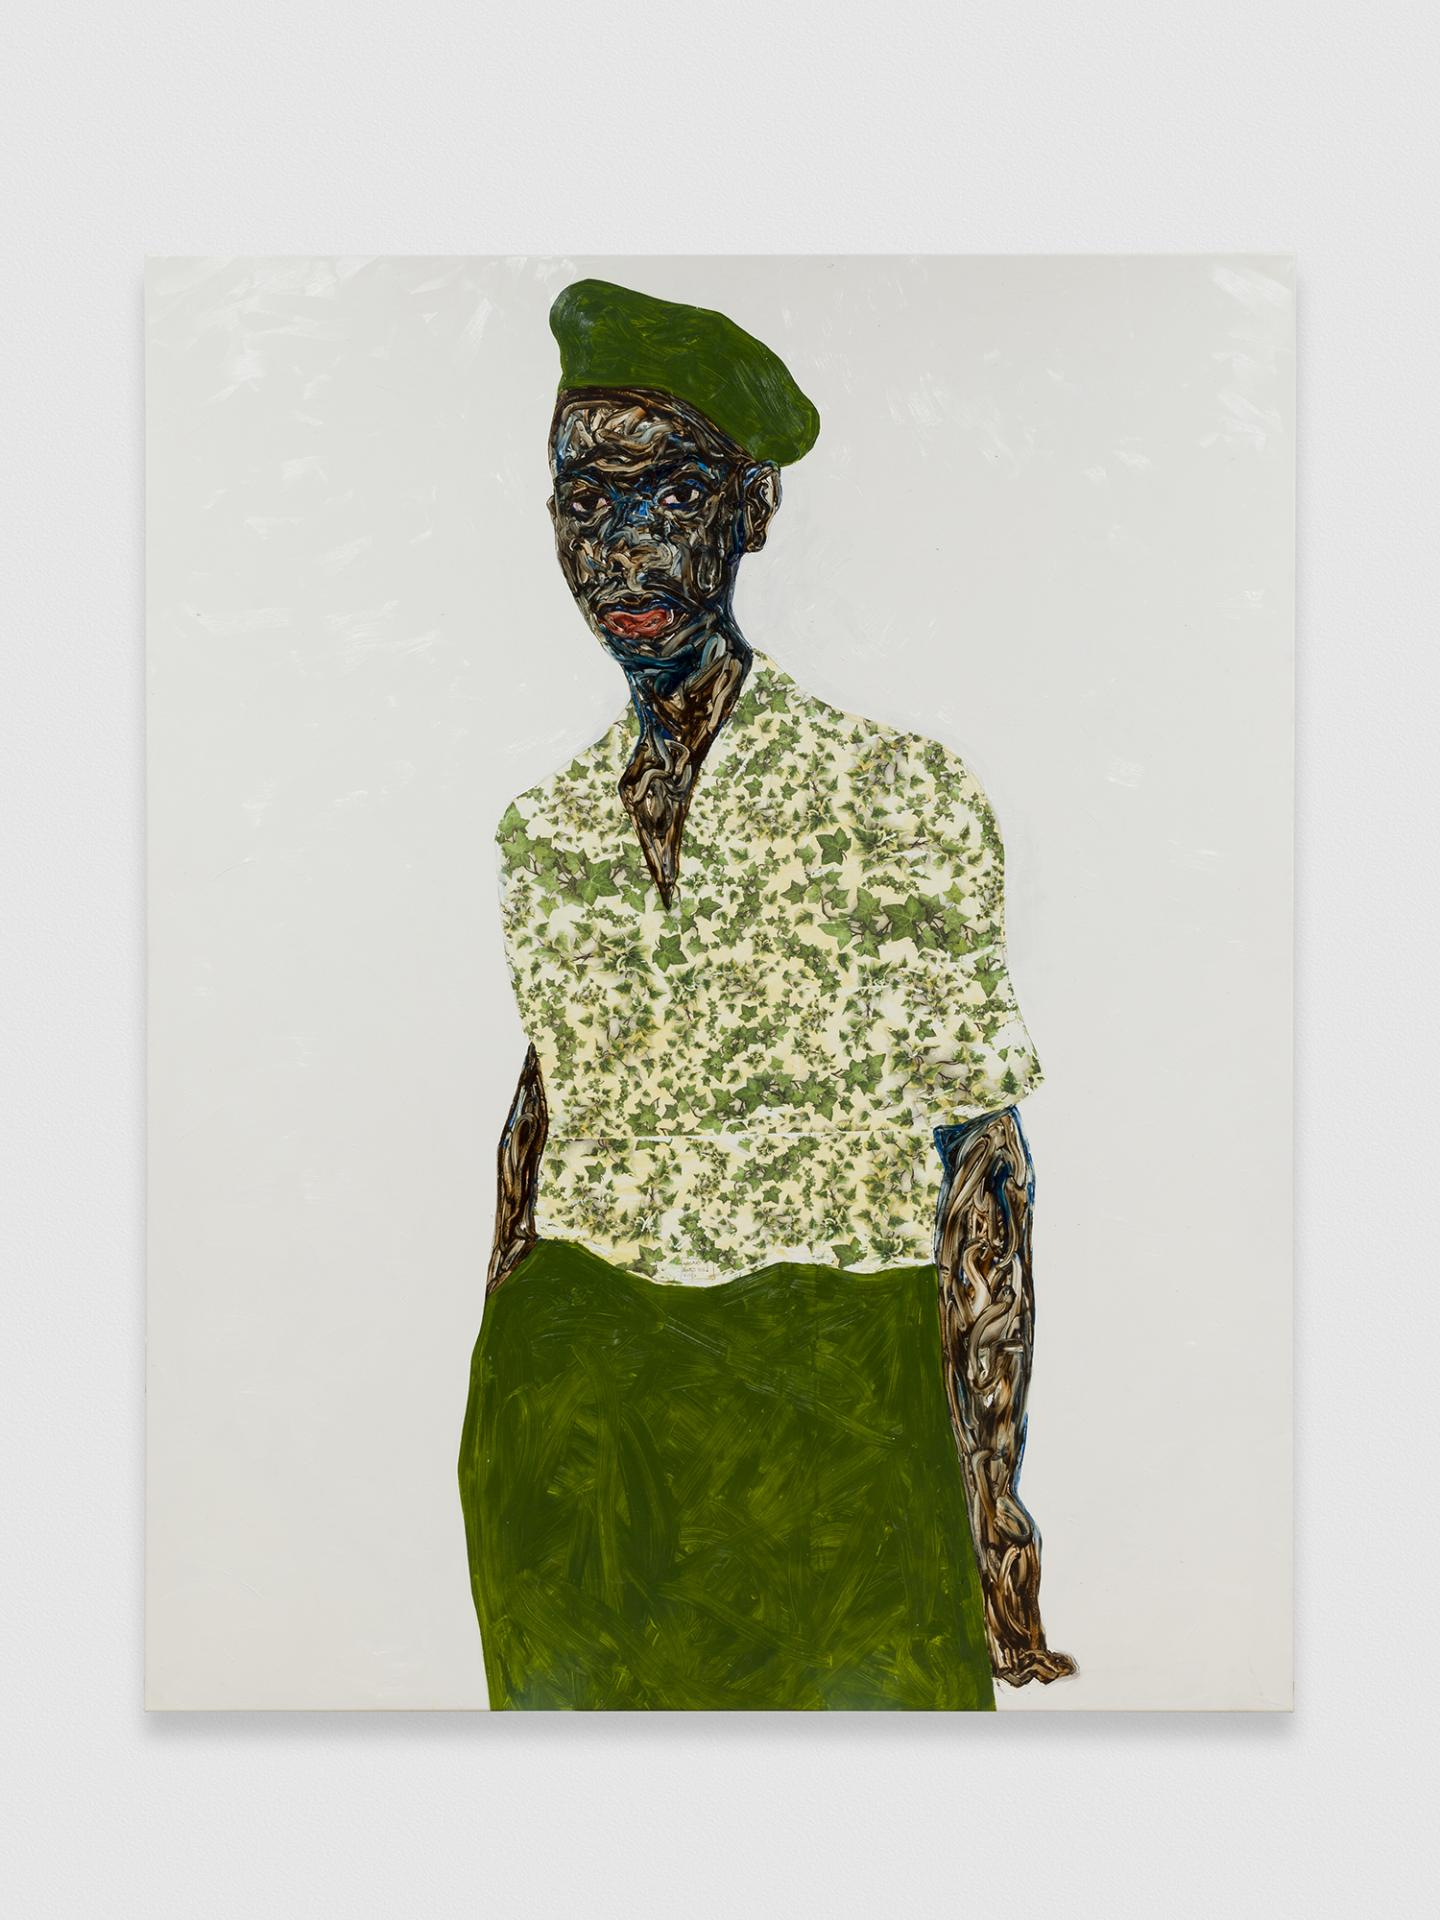 Amoako Boafo, Green Beret, 2020, oil on canvas, 180 x 160 cm. Courtesy: the artist and Mariane Ibrahim, Chicago.